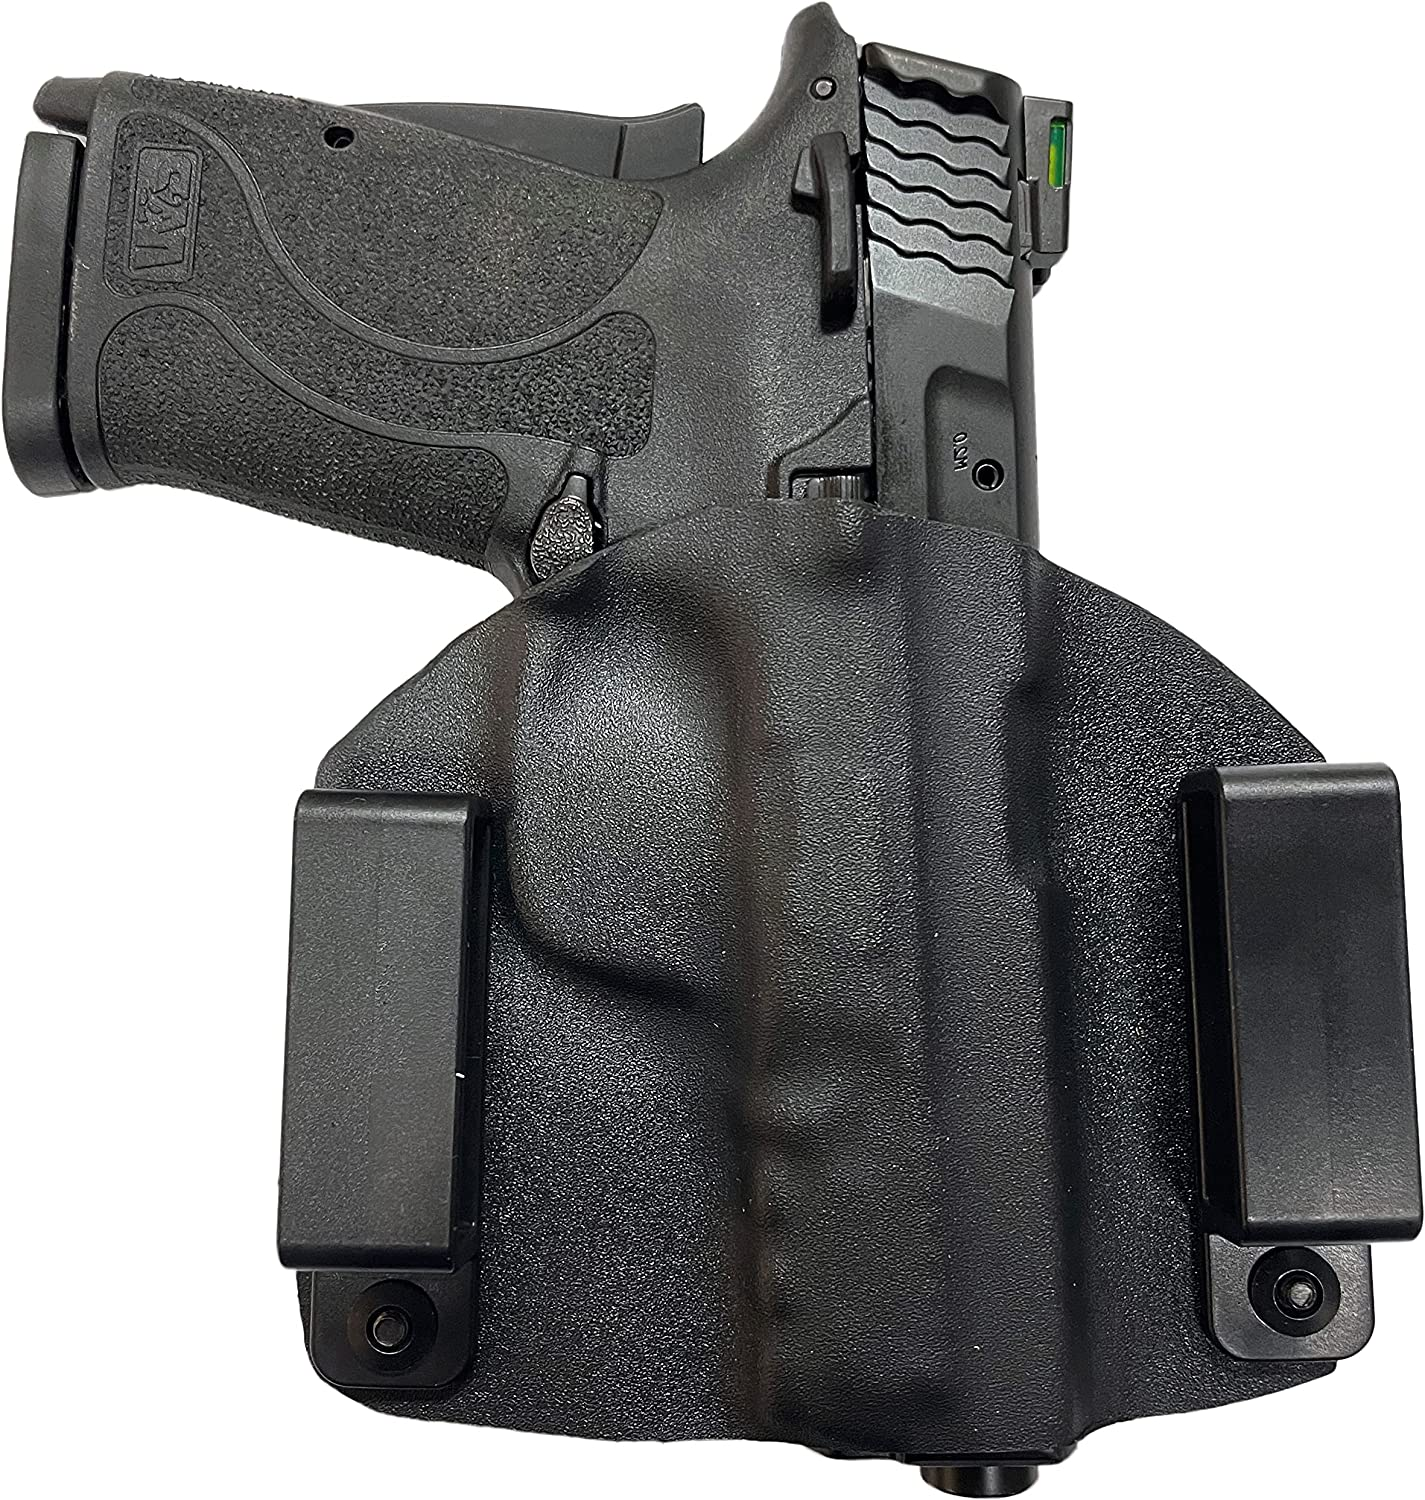 Outside Max 76% OFF The Pants Kydex Hip Gun Holster Sig Louisville-Jefferson County Mall - 290 FITS: F OWB w